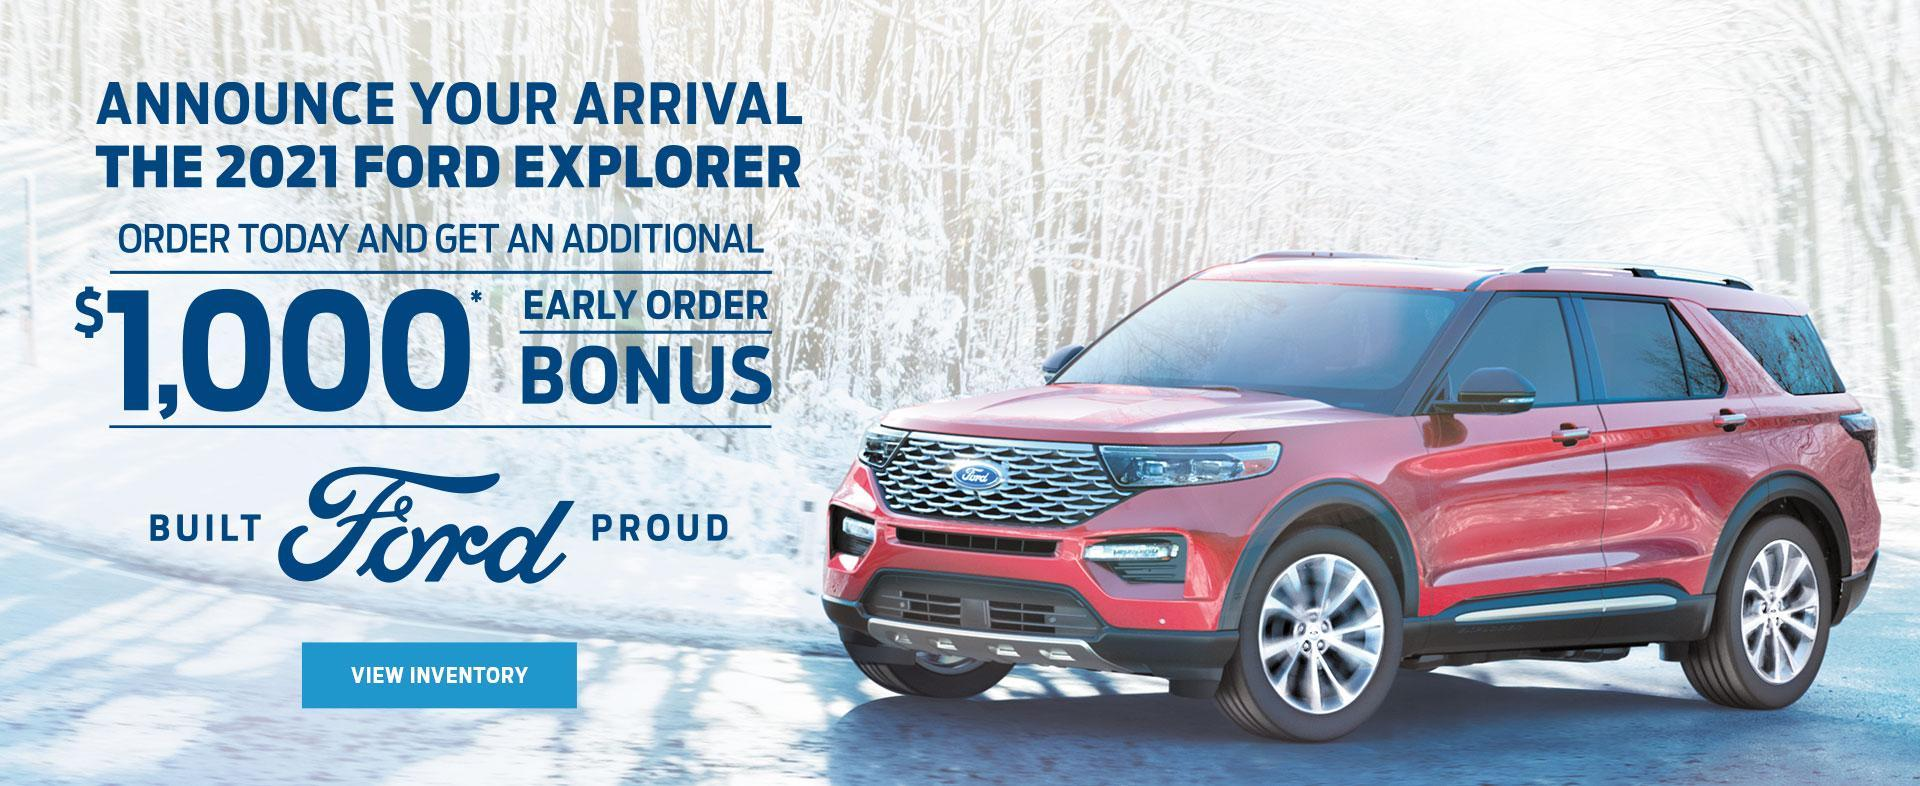 Early Order Bonus | 2021 Ford Explorer Ford of Canada